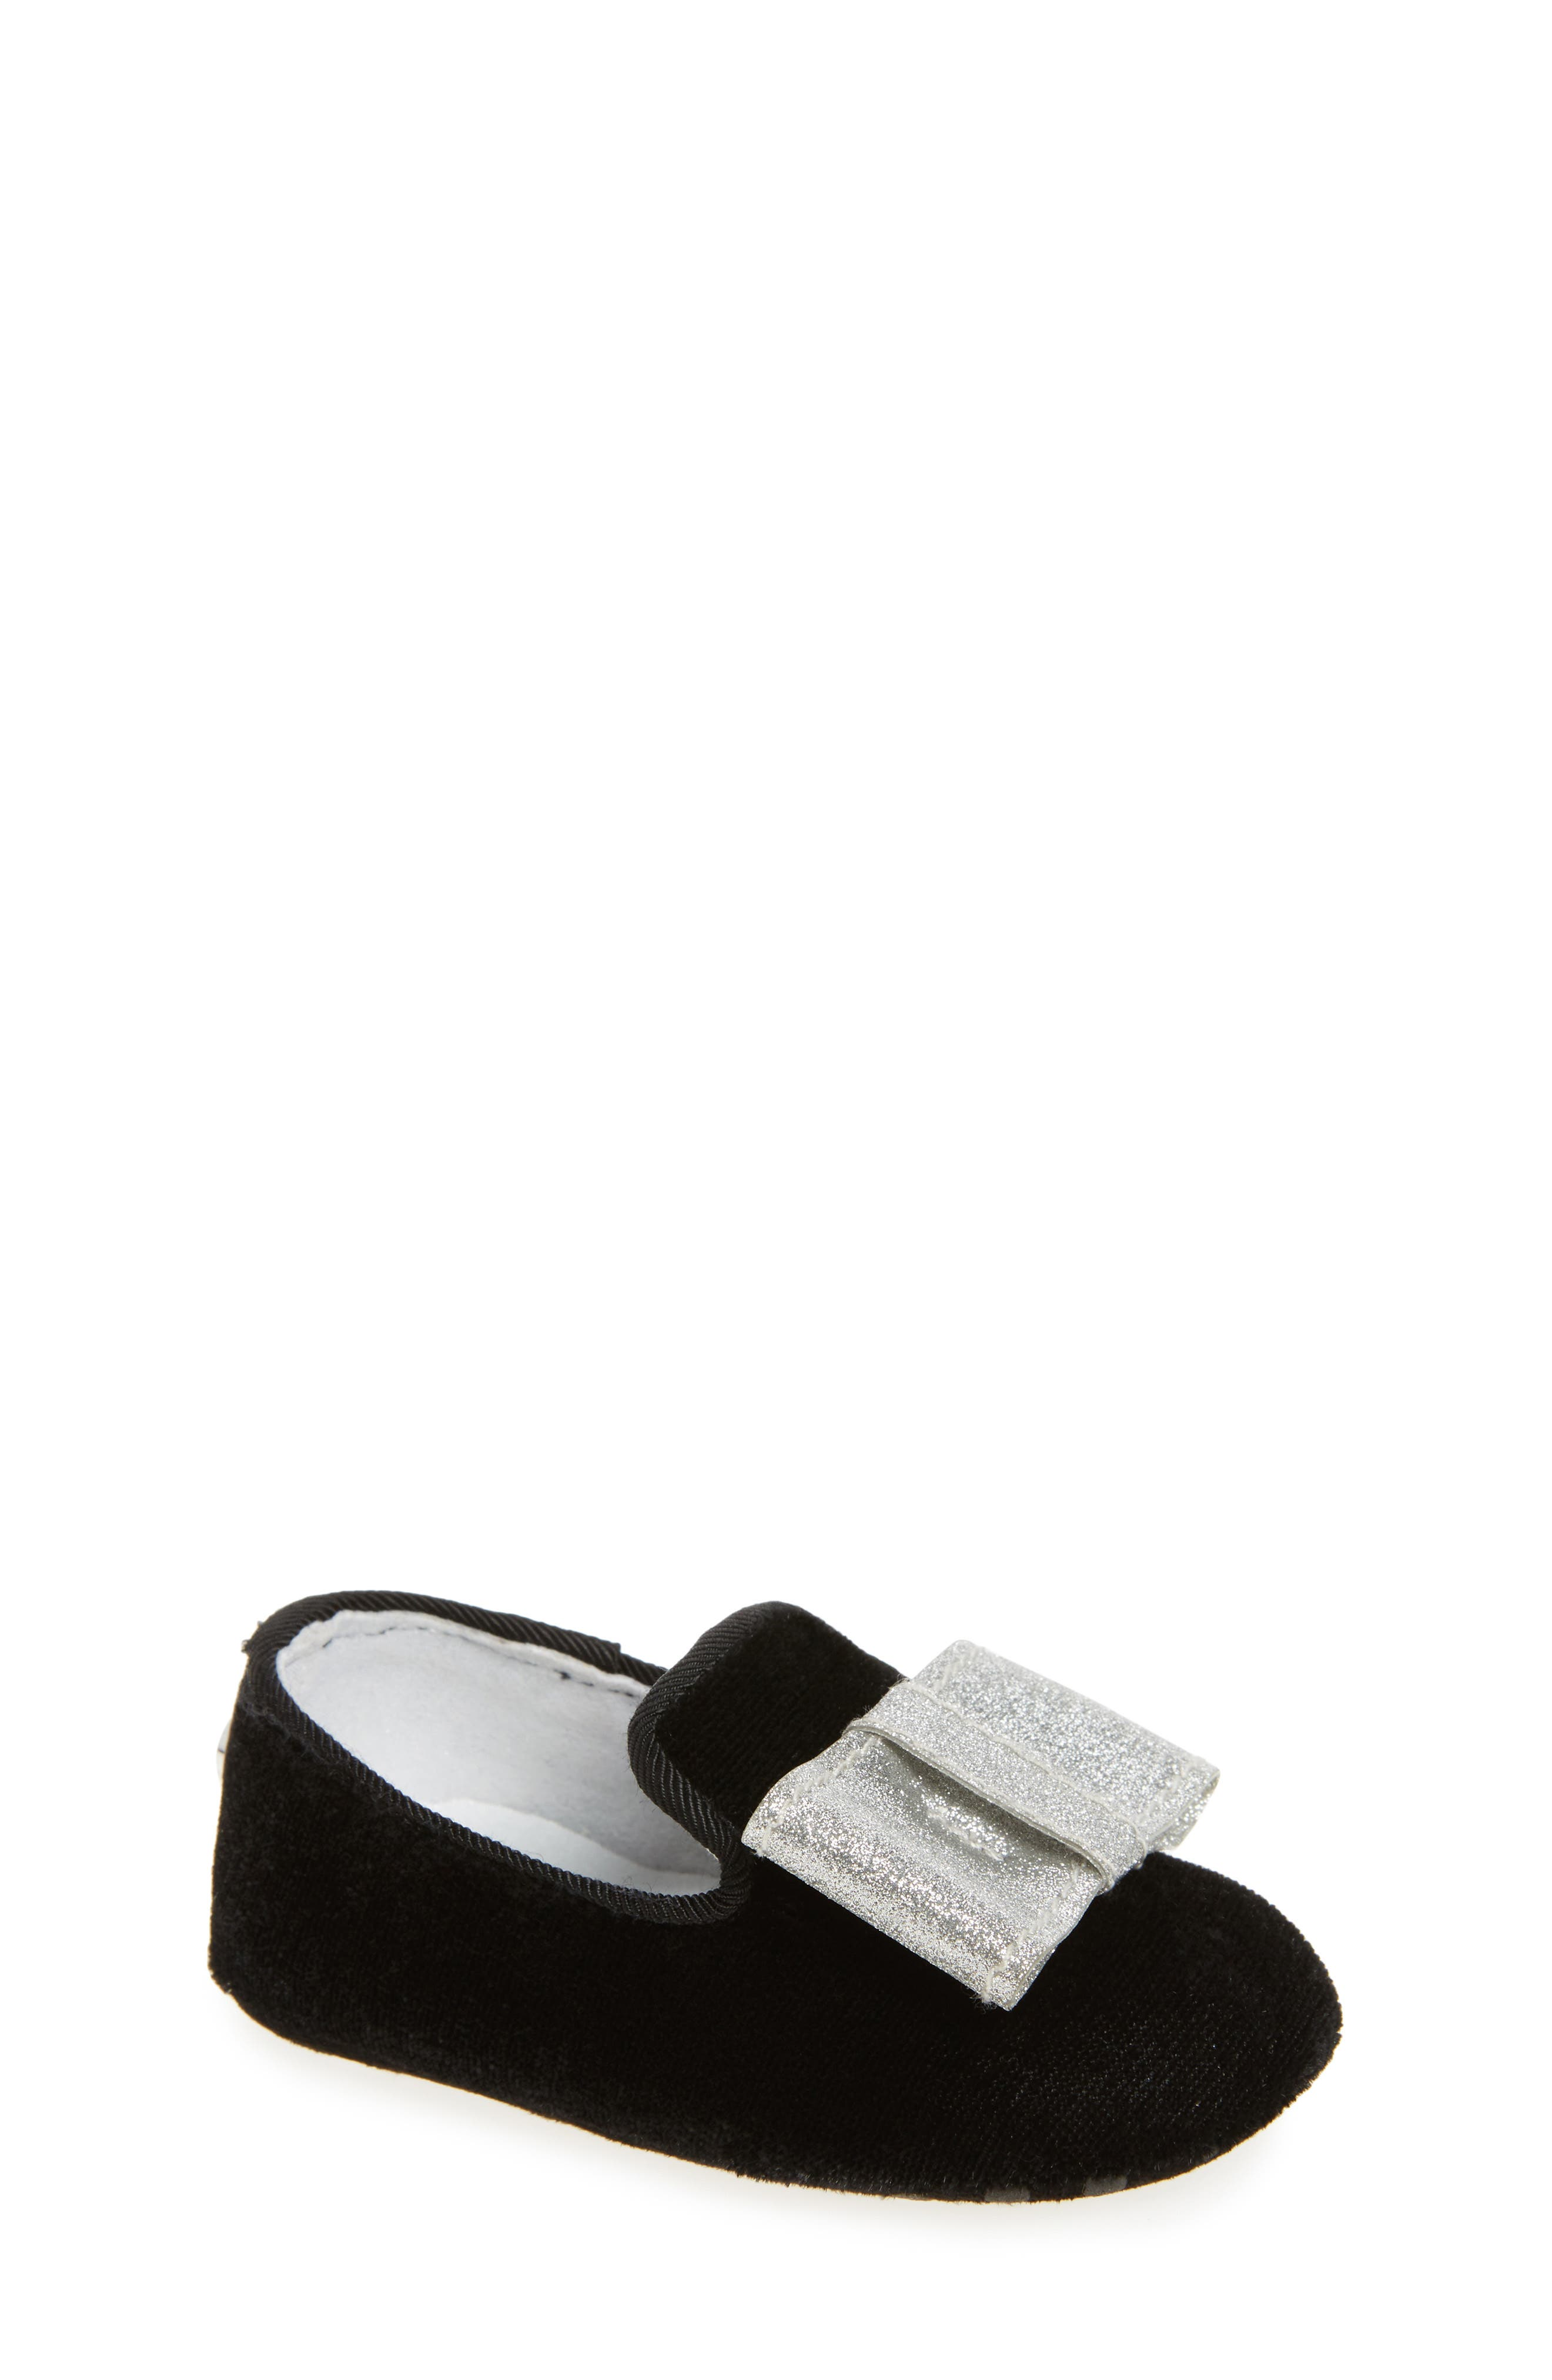 Bow Loafer Crib Shoe,                         Main,                         color, 012